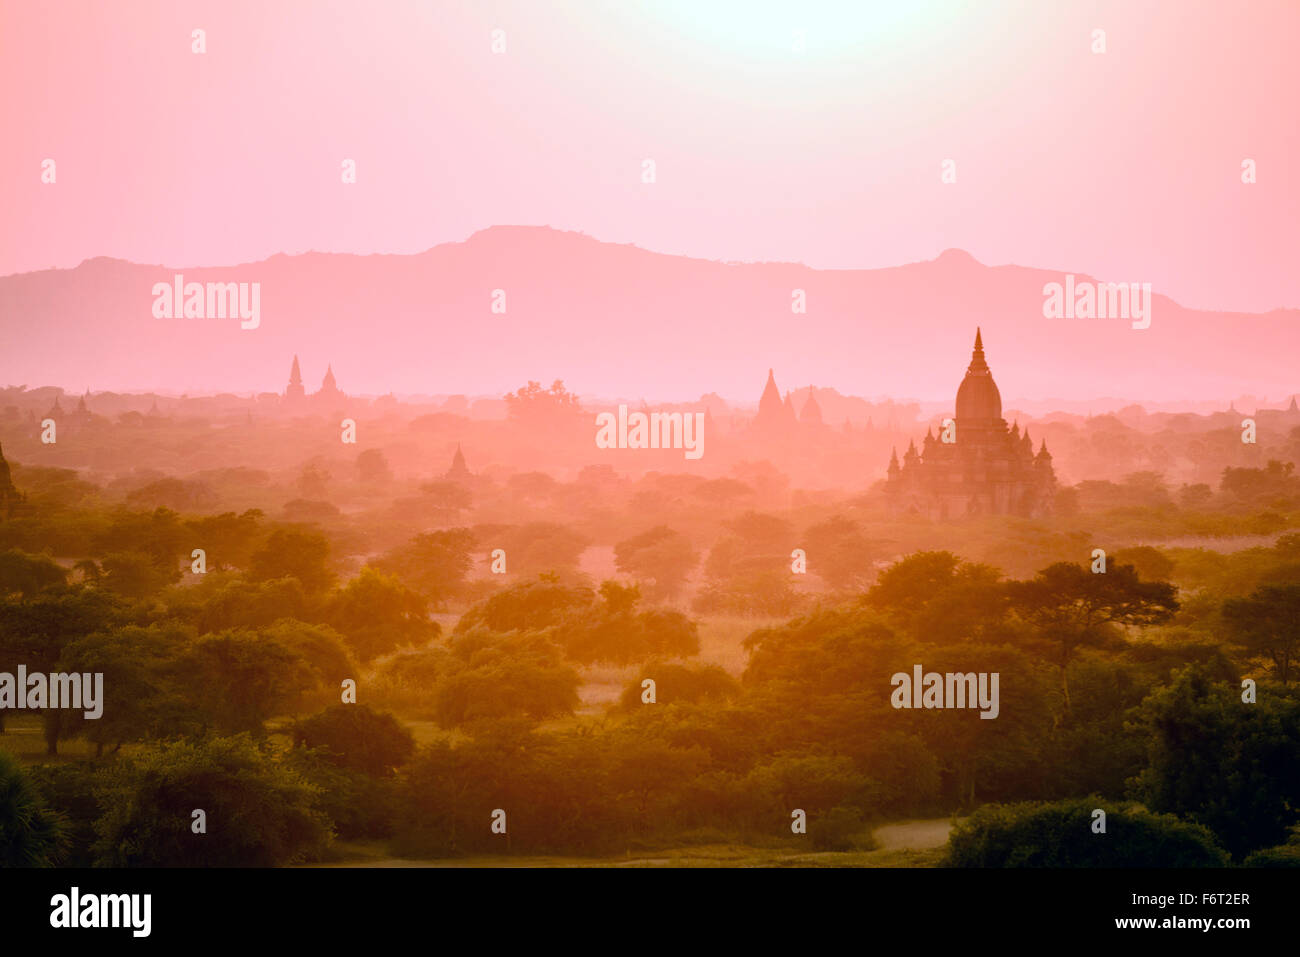 Towers in misty landscape - Stock Image